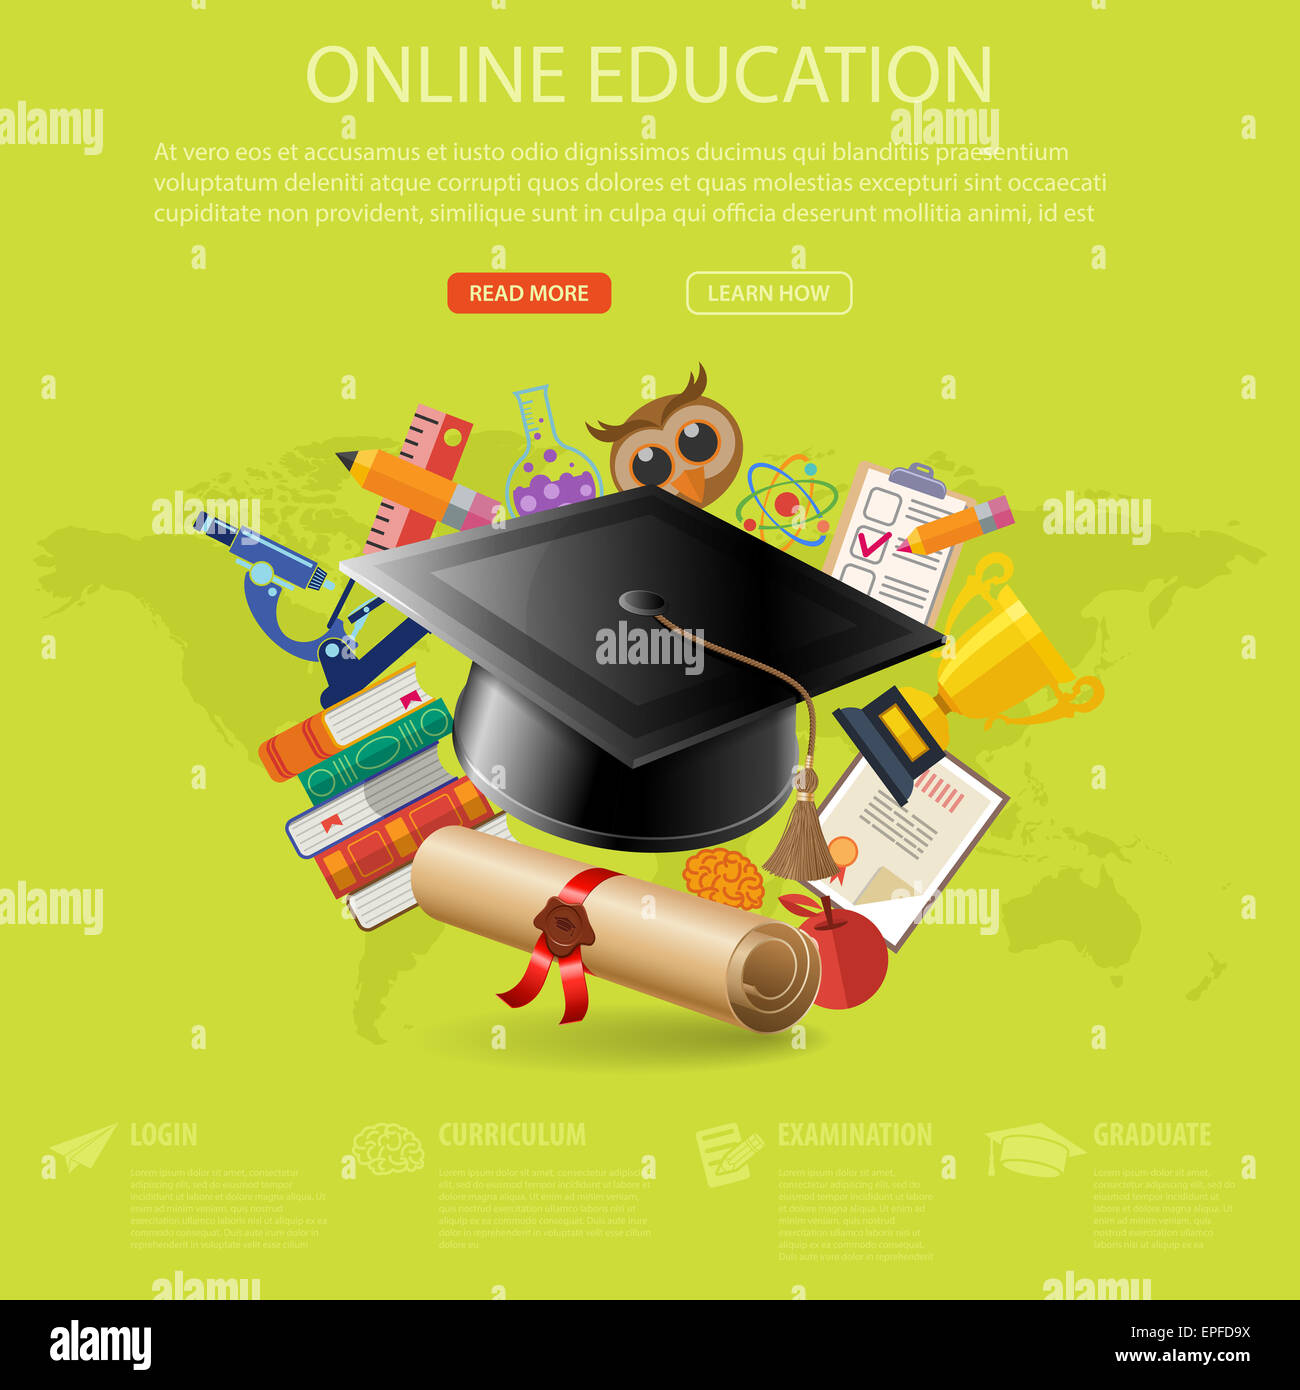 E learning poster designs - Online Education And E Learning Concept Flat Icon Set With Mortarboard Books Microscope For Flyer Poster Web Site Illustr